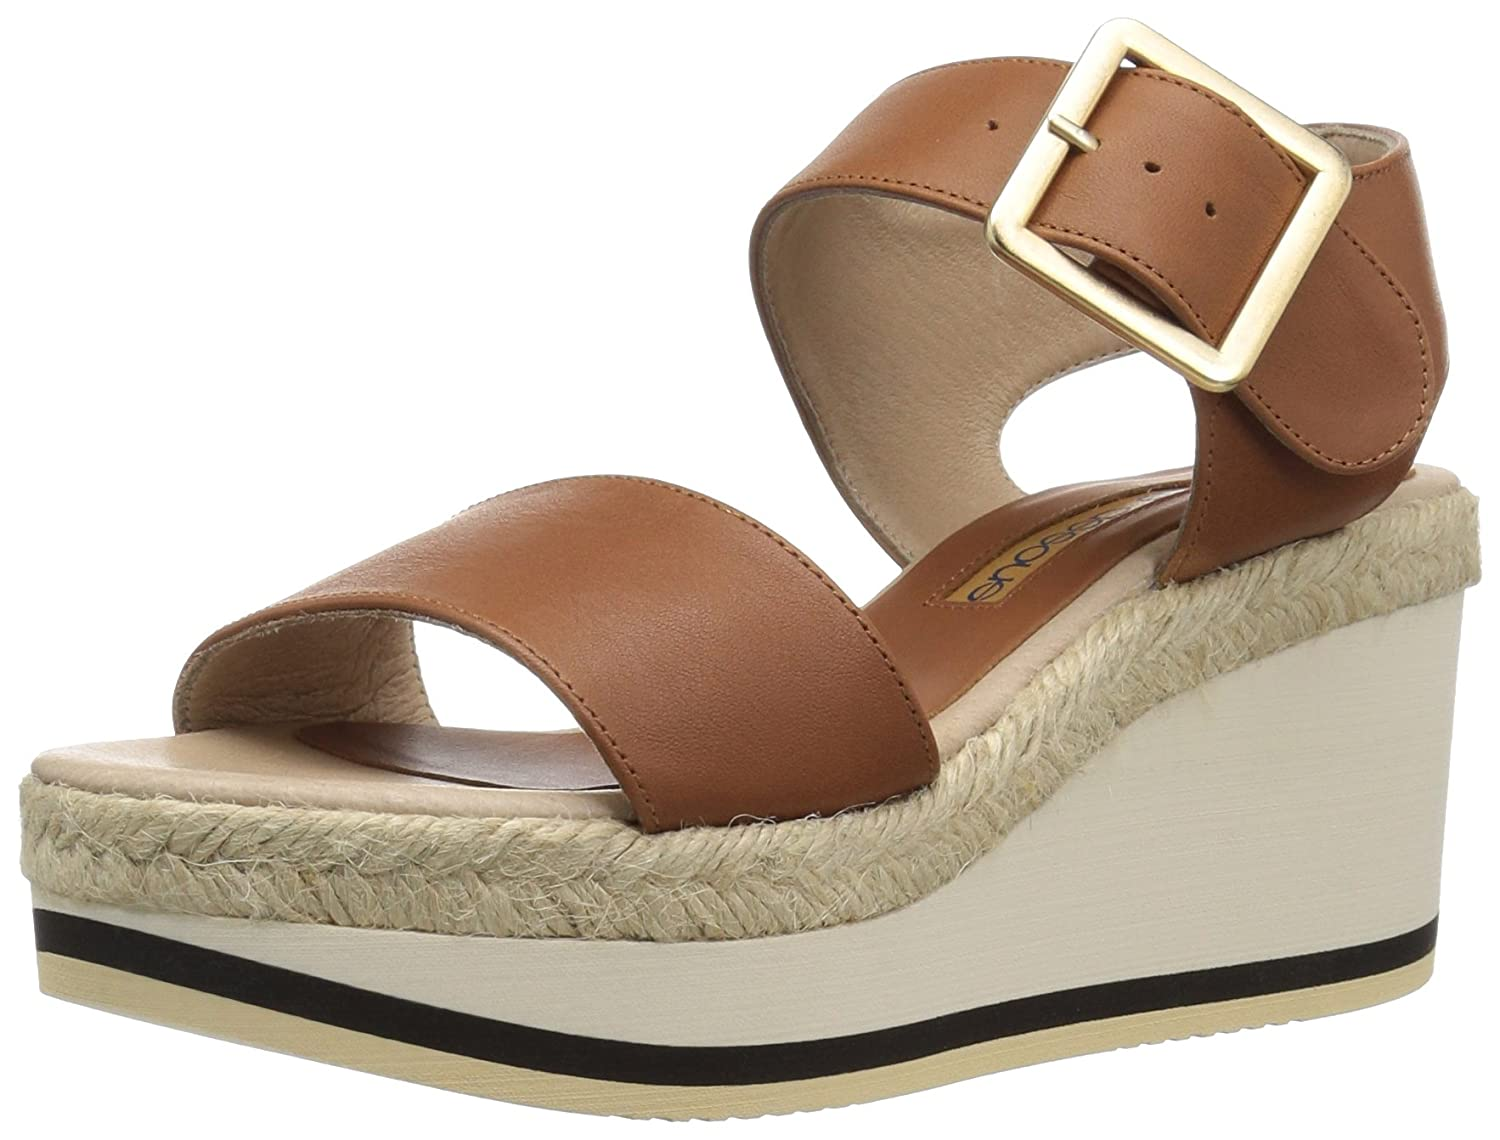 Andre Assous Women's Carmela Espadrille Wedge Wedges Sandal B077KC98ZL Platforms & Wedges Wedge a1a60a